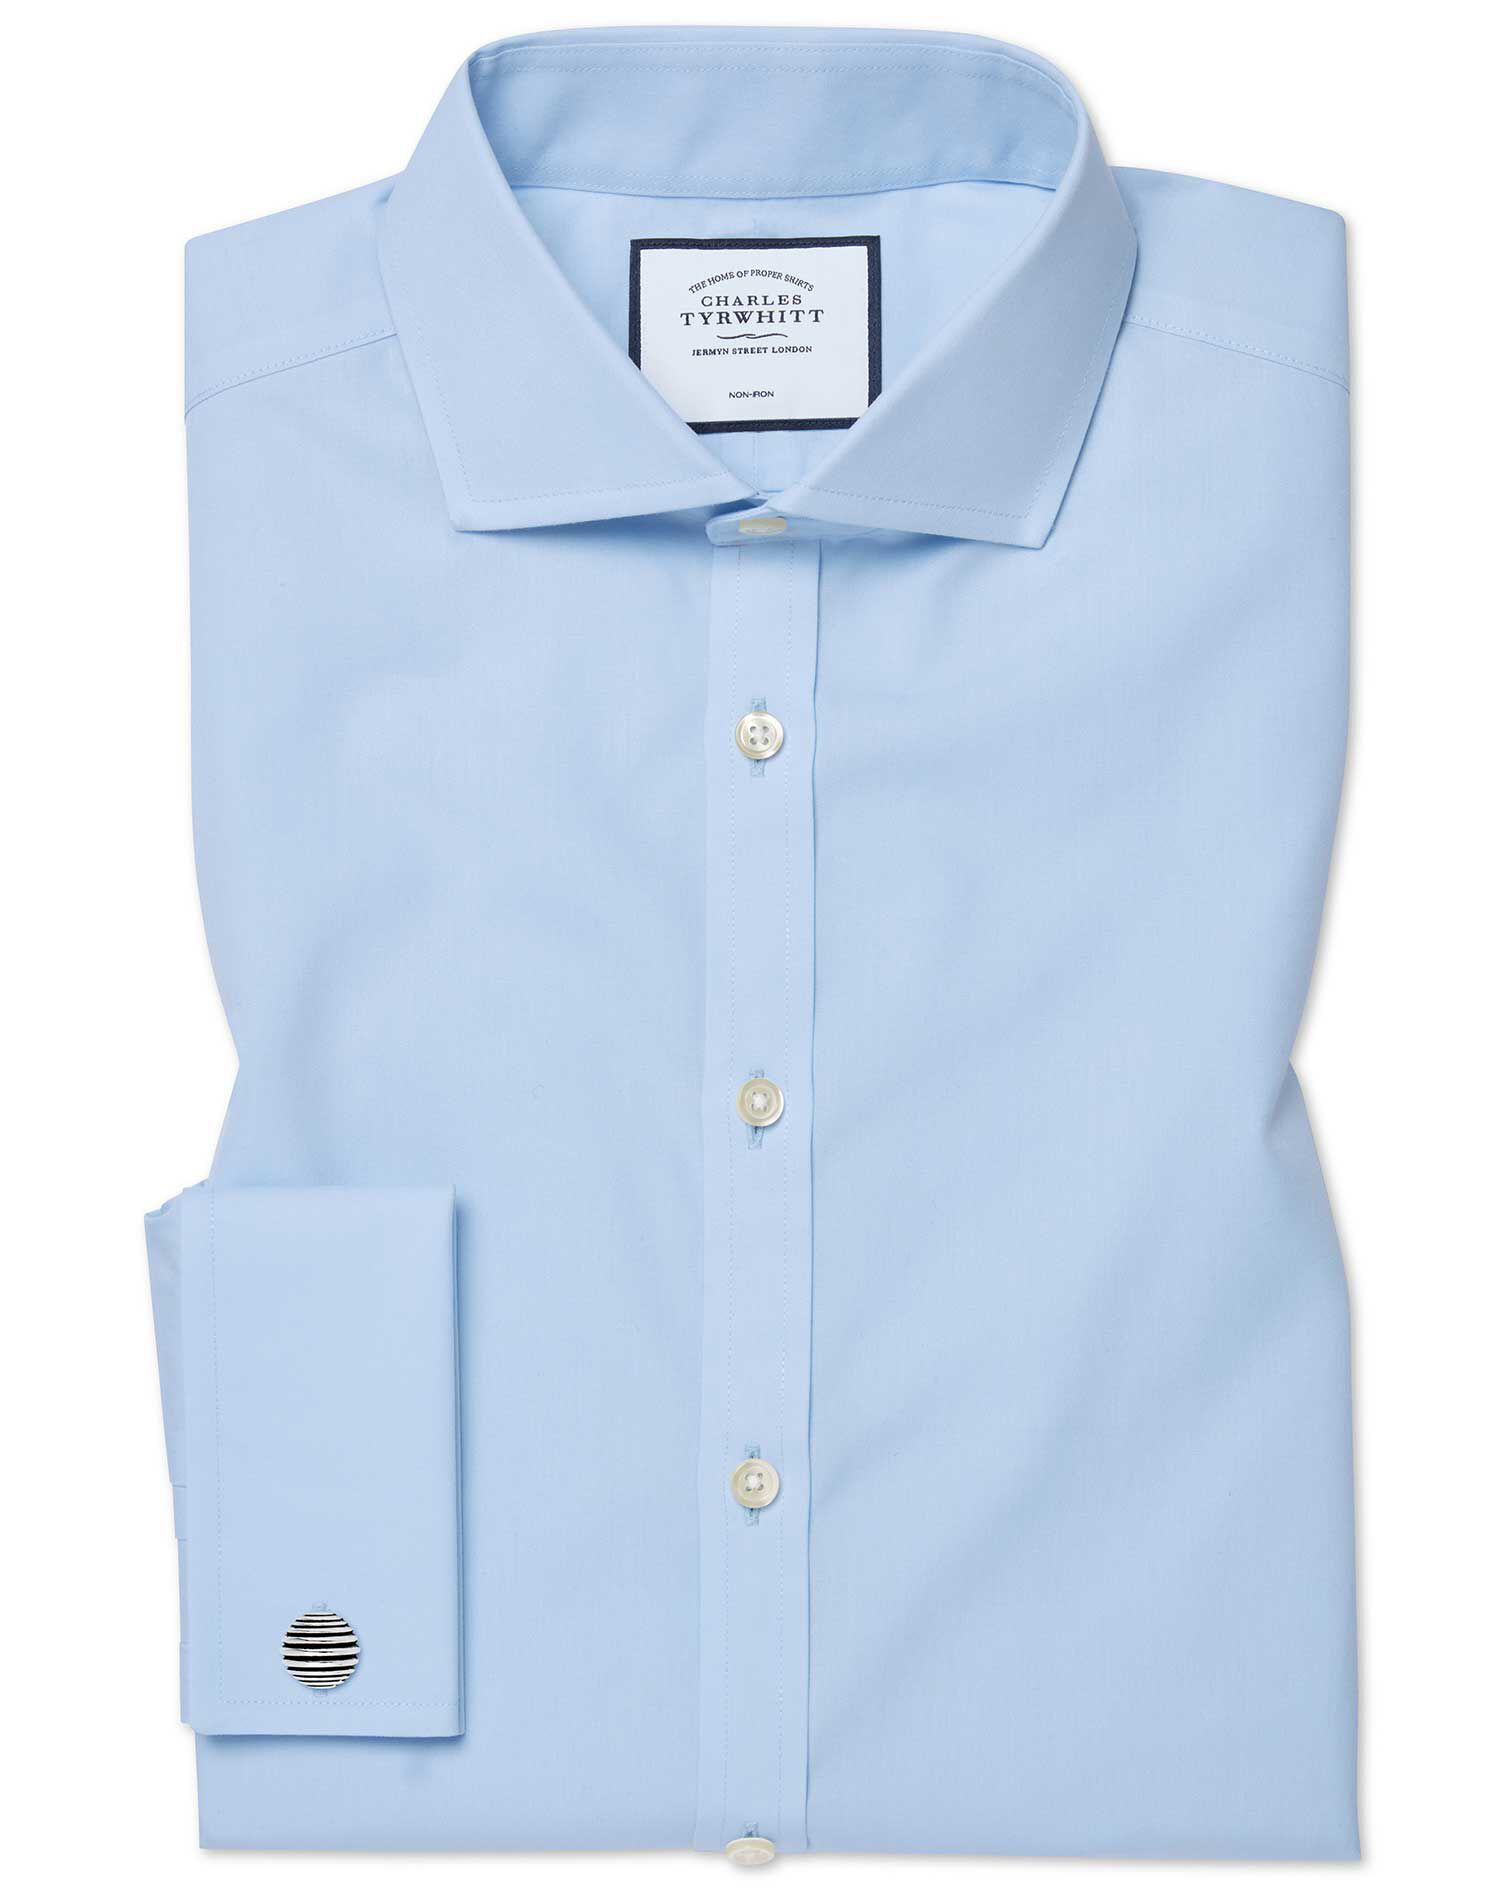 Classic Fit Cutaway Non-Iron Twill Sky Blue Cotton Formal Shirt Double Cuff Size 15.5/33 by Charles